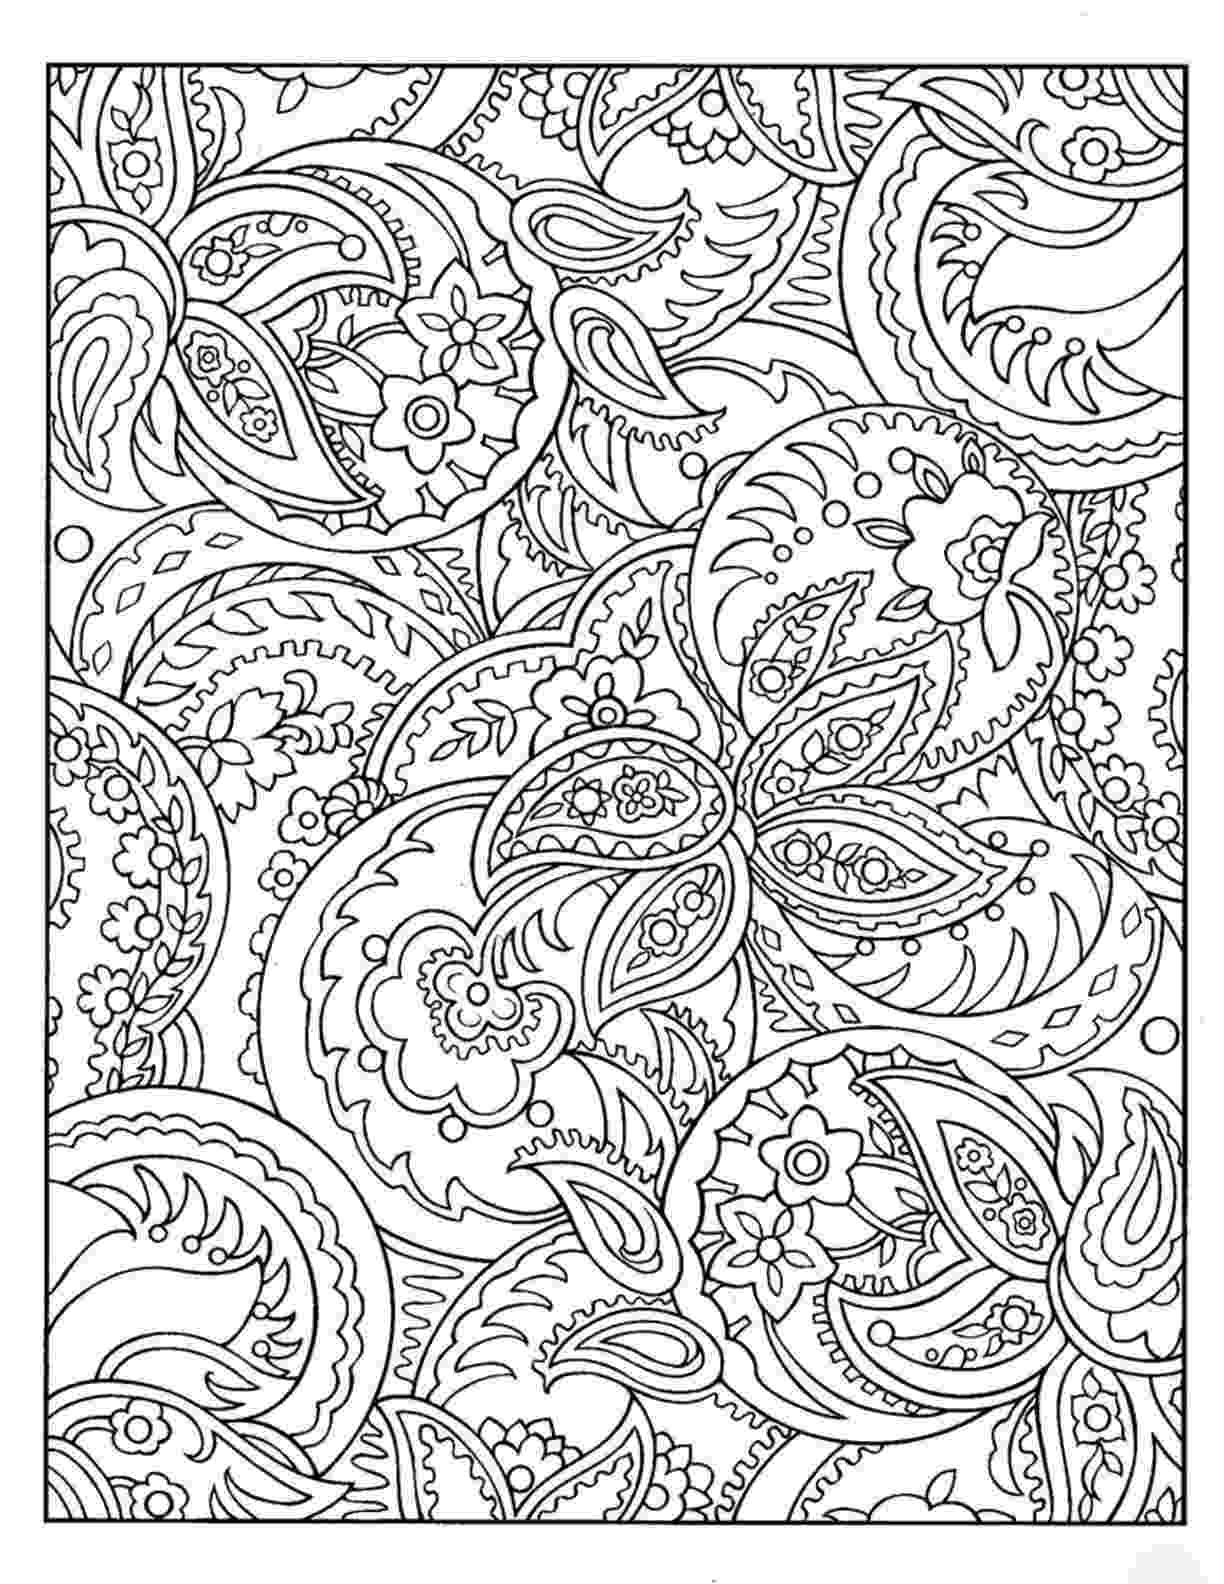 free coloring pages with designs free coloring pages cool designs colouring pages cool with coloring pages free designs